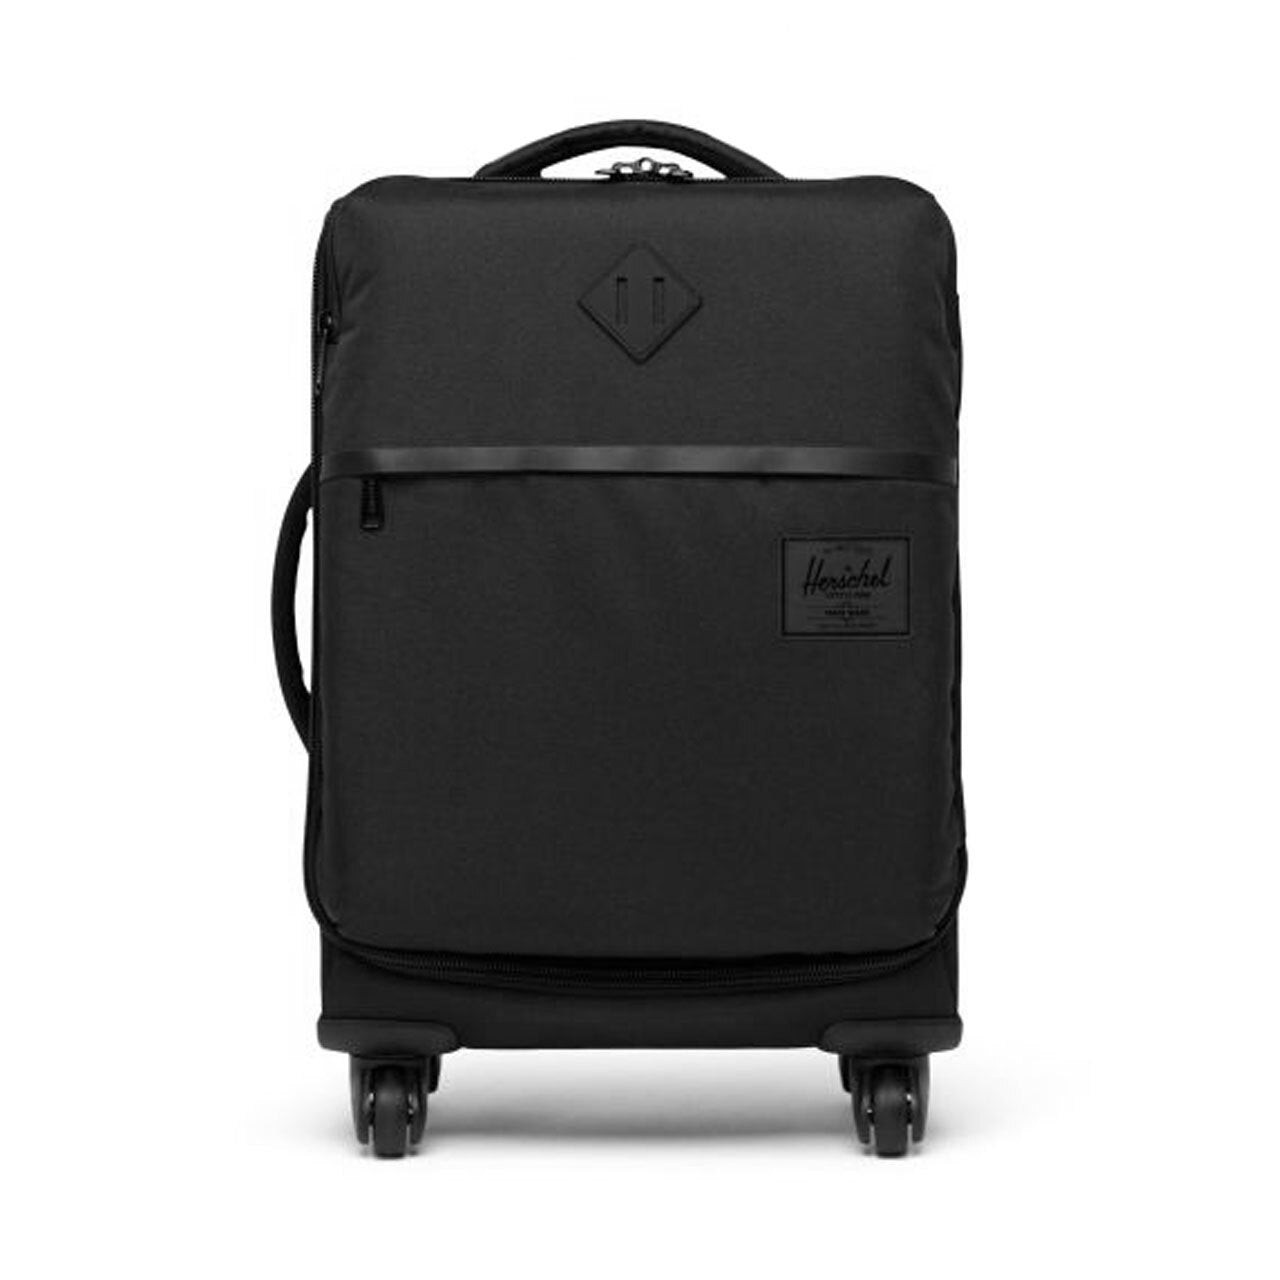 Herschel Supply Co. Cordura Highland Carry-On Bag